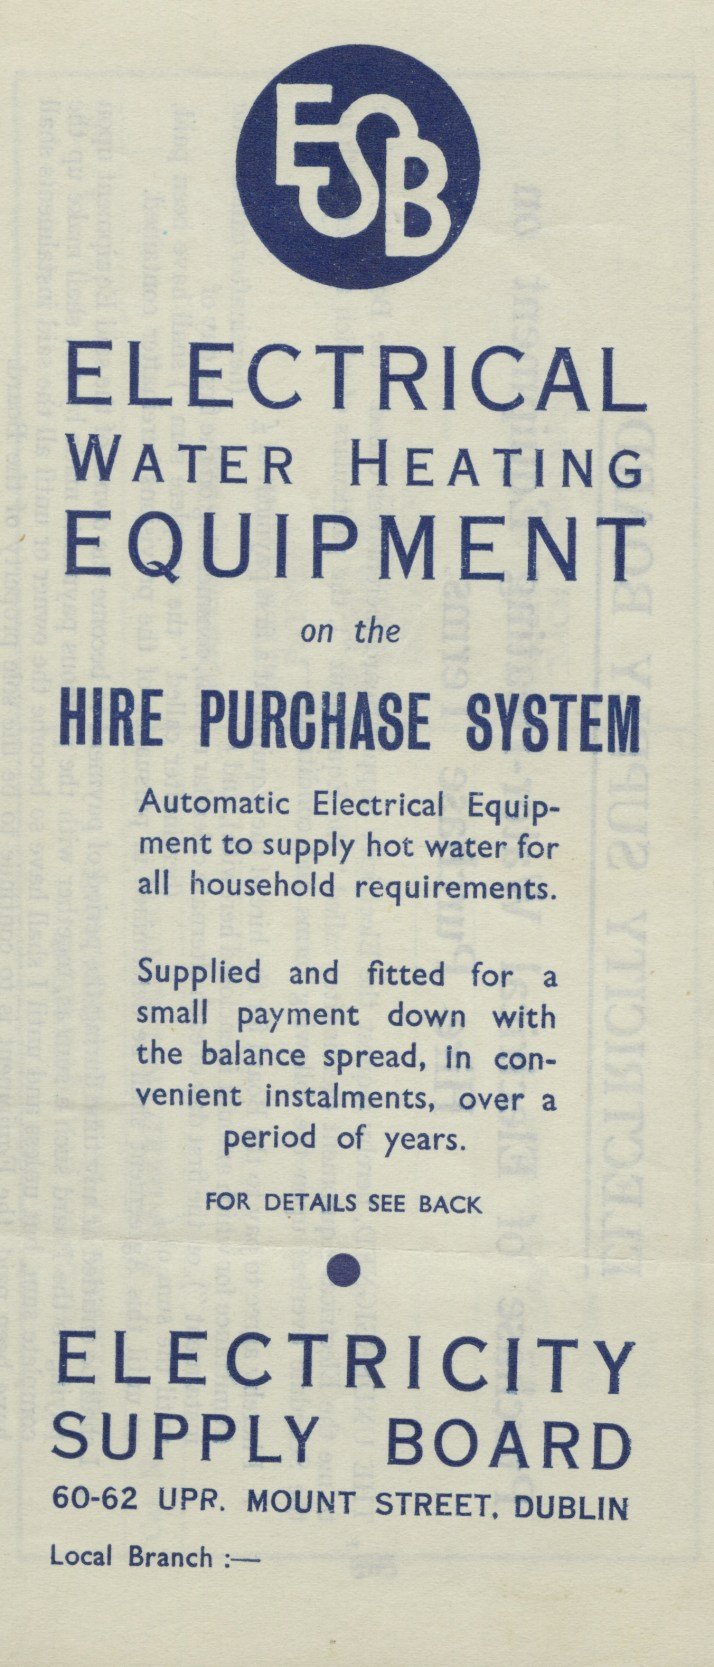 ESB pamphlet for water heating equipment, c1930s.